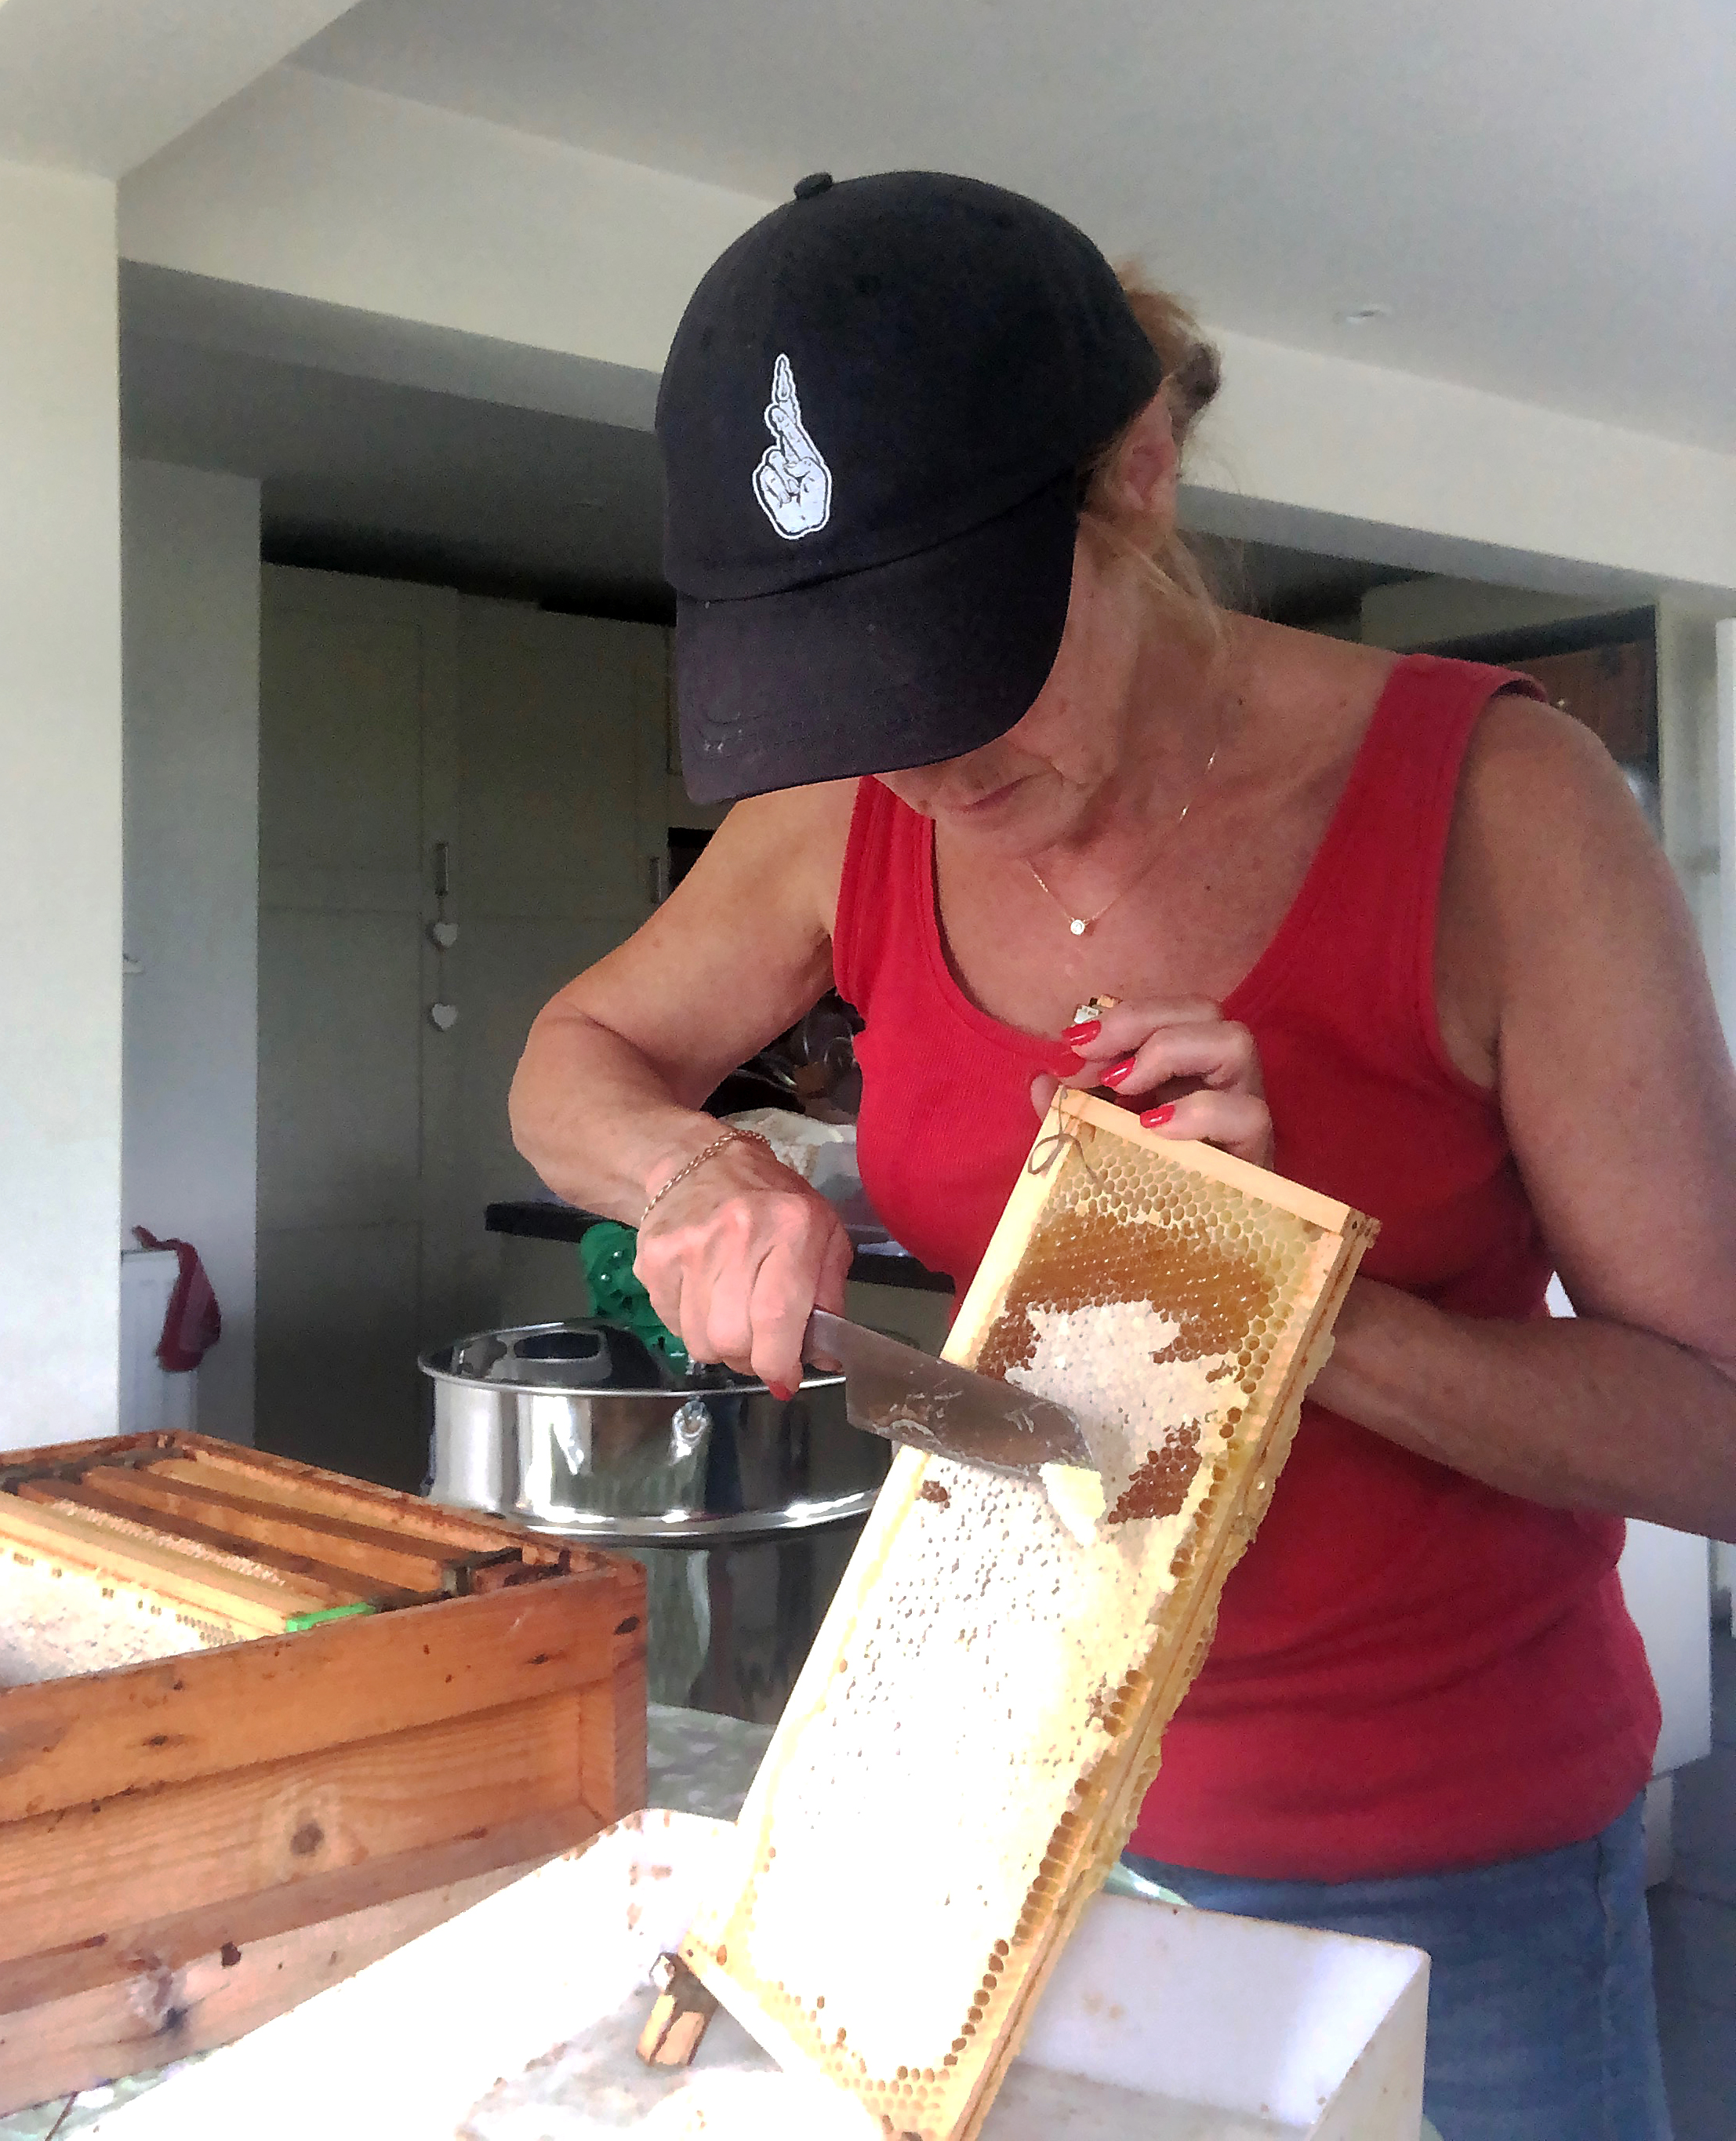 Taking off the wax cappings